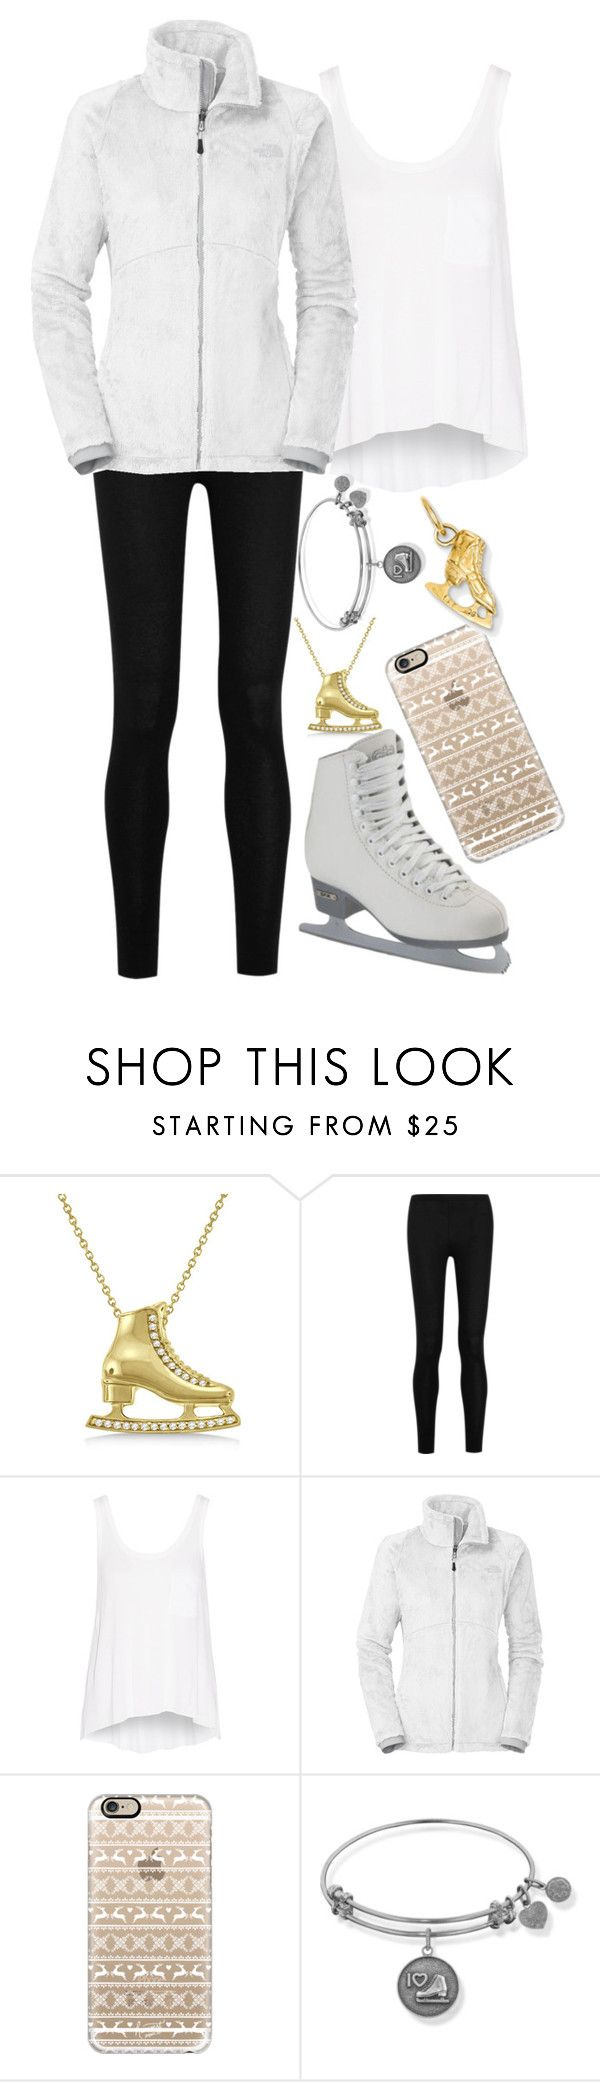 """ROLEPLAY!!!"" by lol-fangirl-af ❤ liked on Polyvore featuring Allurez, Donna Karan, rag & bone, The North Face, Casetify and Kevin Jewelers"